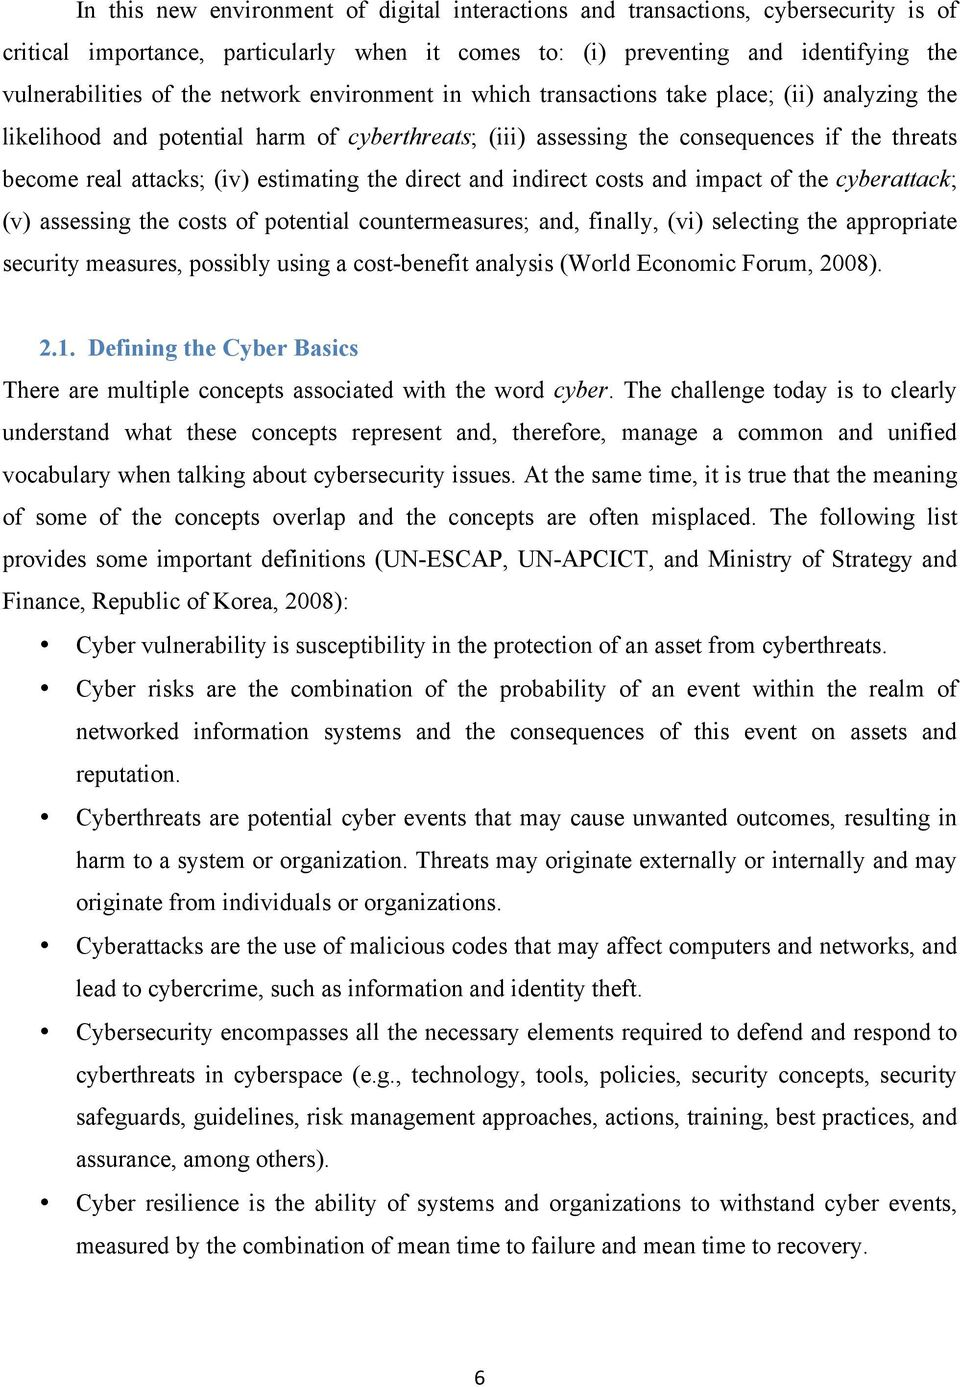 estimating the direct and indirect costs and impact of the cyberattack; (v) assessing the costs of potential countermeasures; and, finally, (vi) selecting the appropriate security measures, possibly